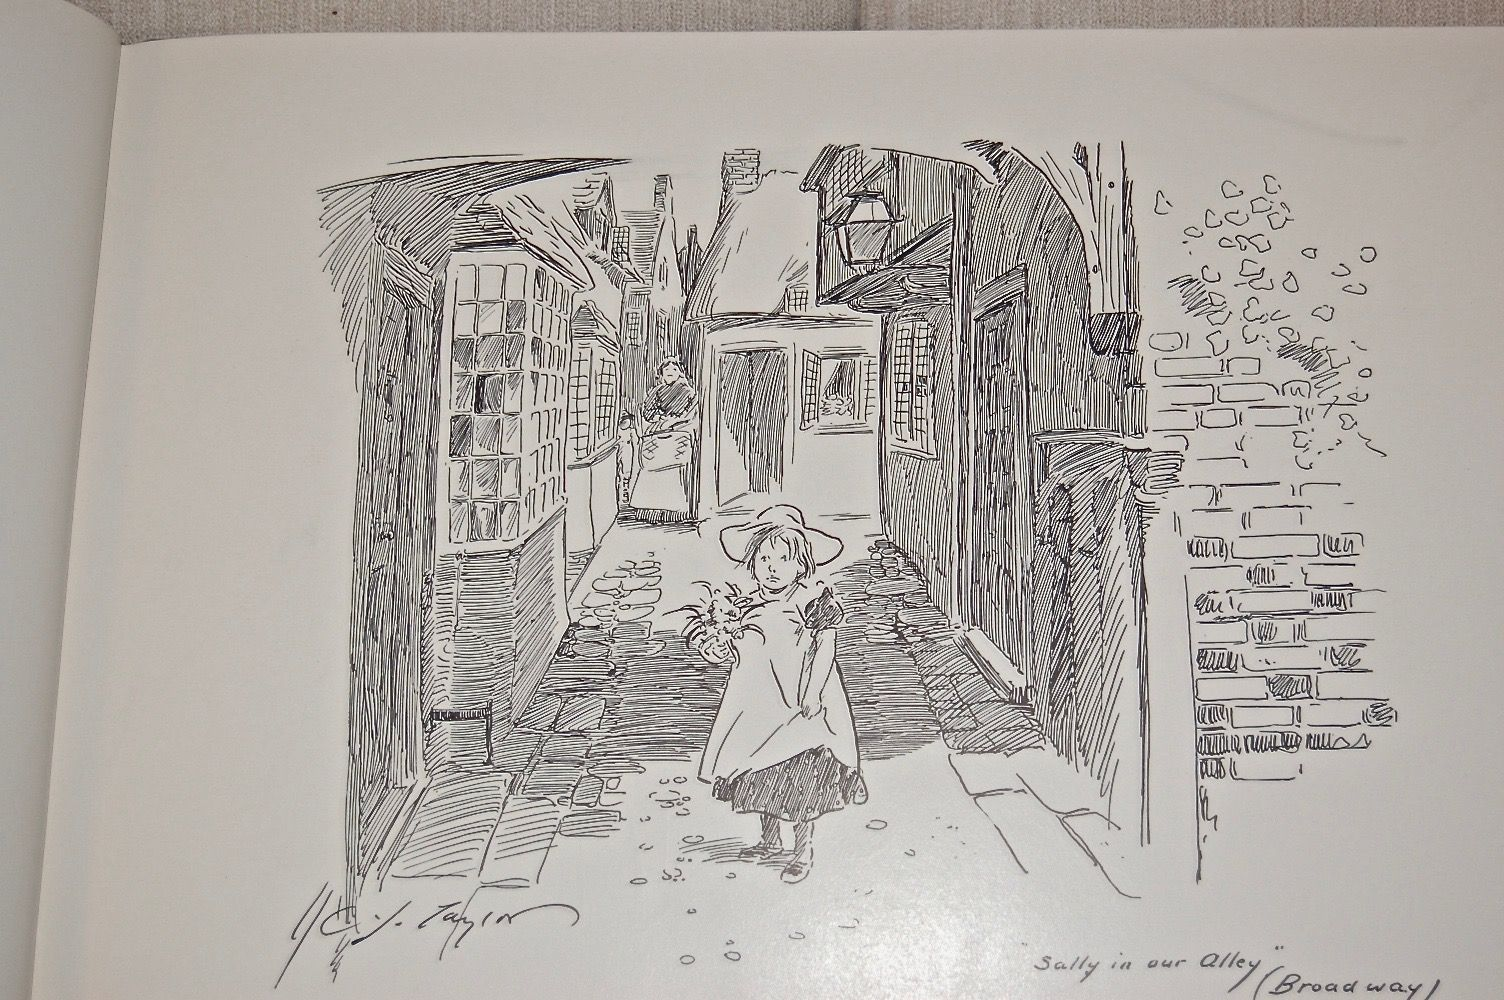 England: Pen and Ink Drawings